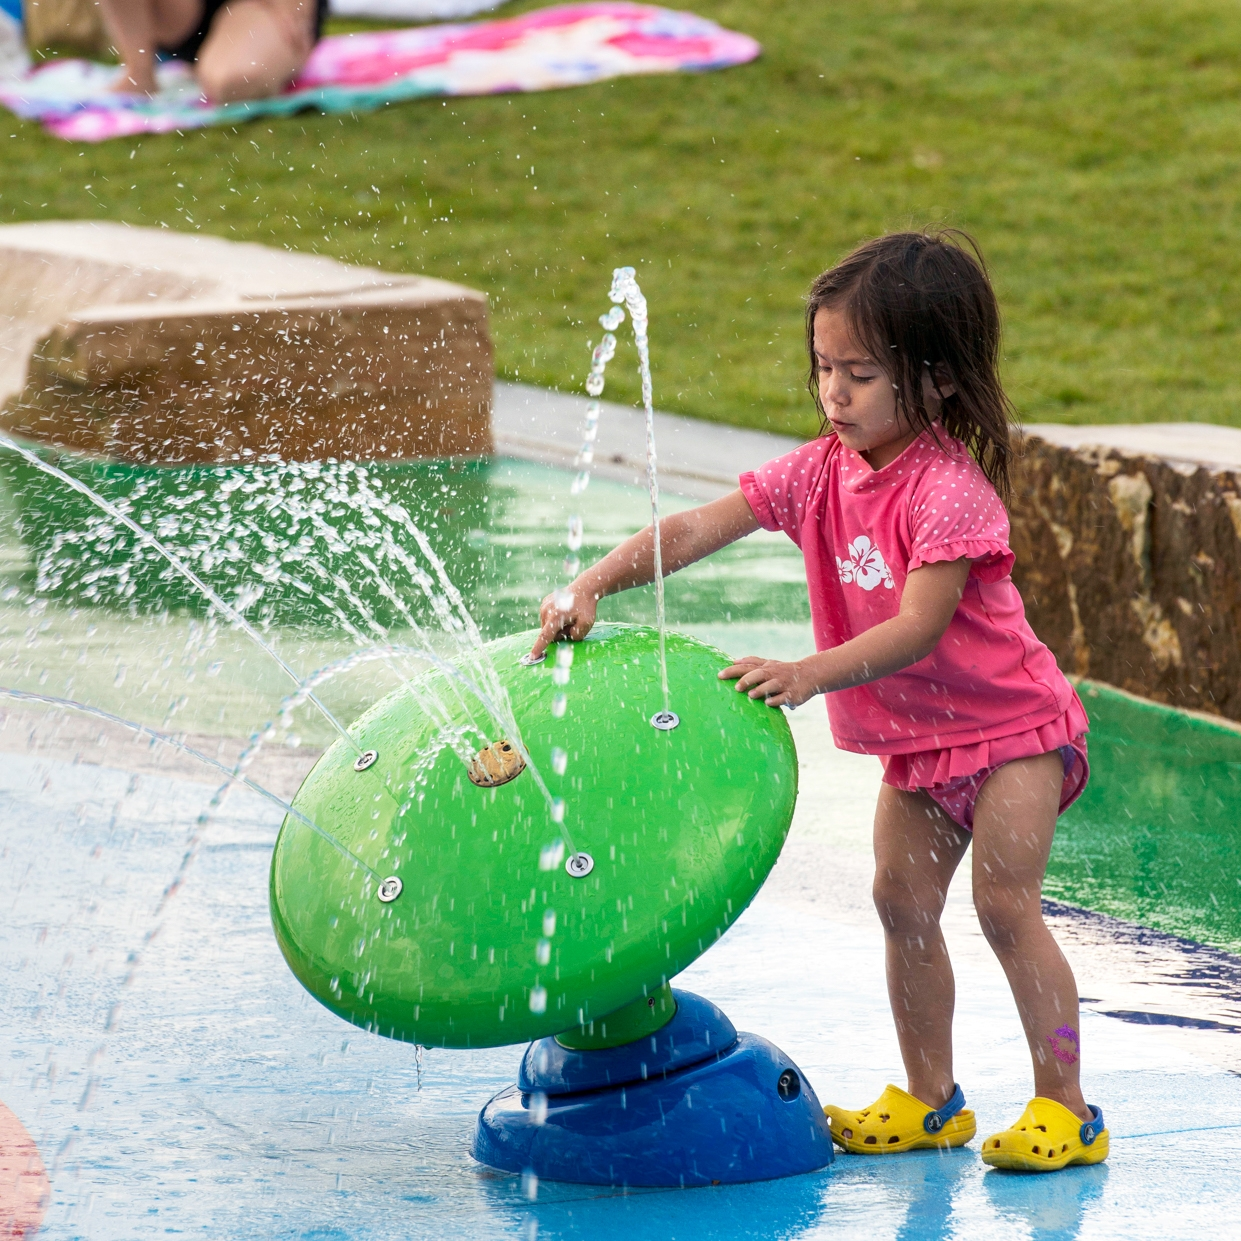 Girl explores a water jet feature